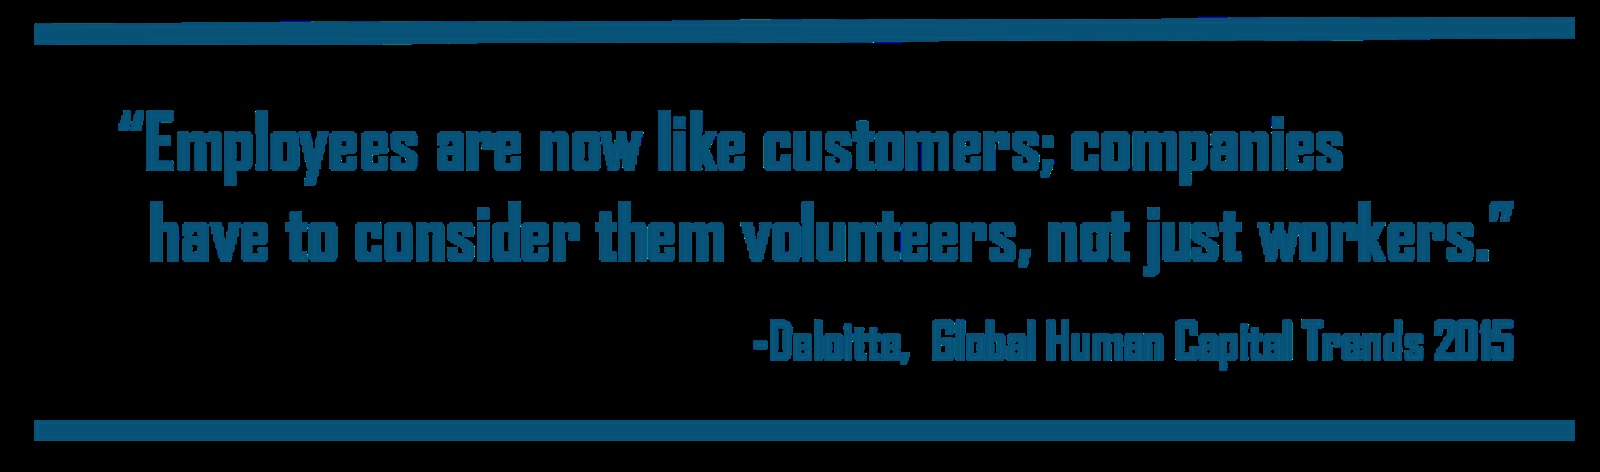 Employees are like customers